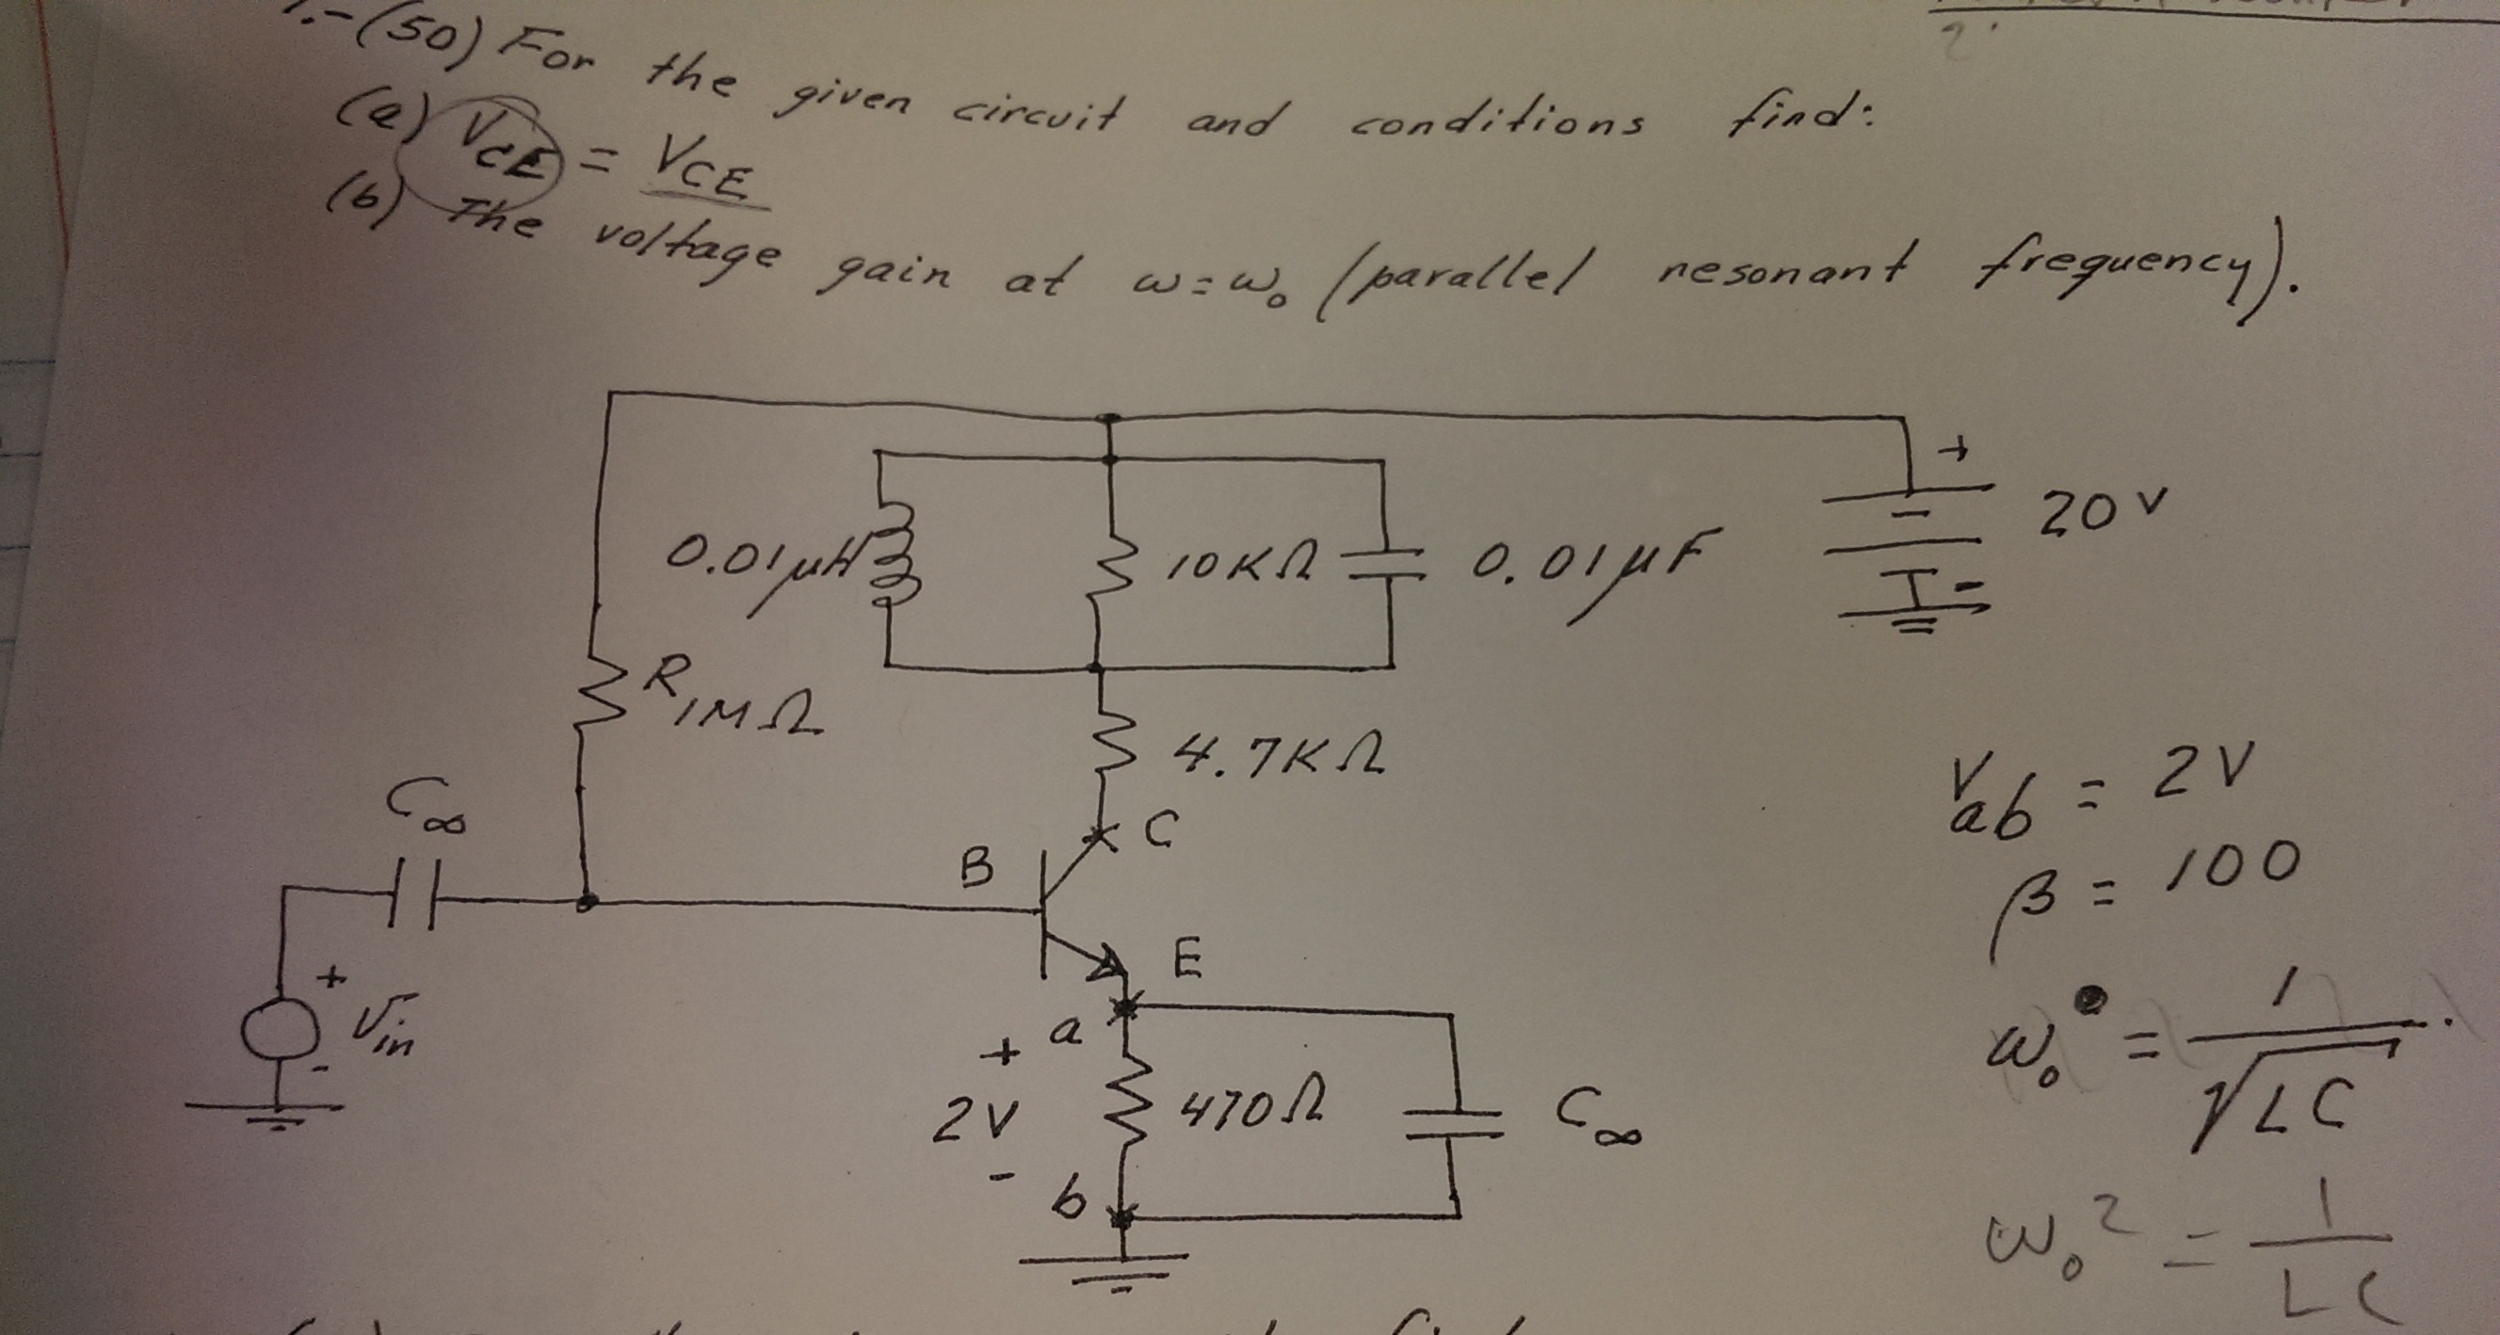 For the given circuit and condition and conditions